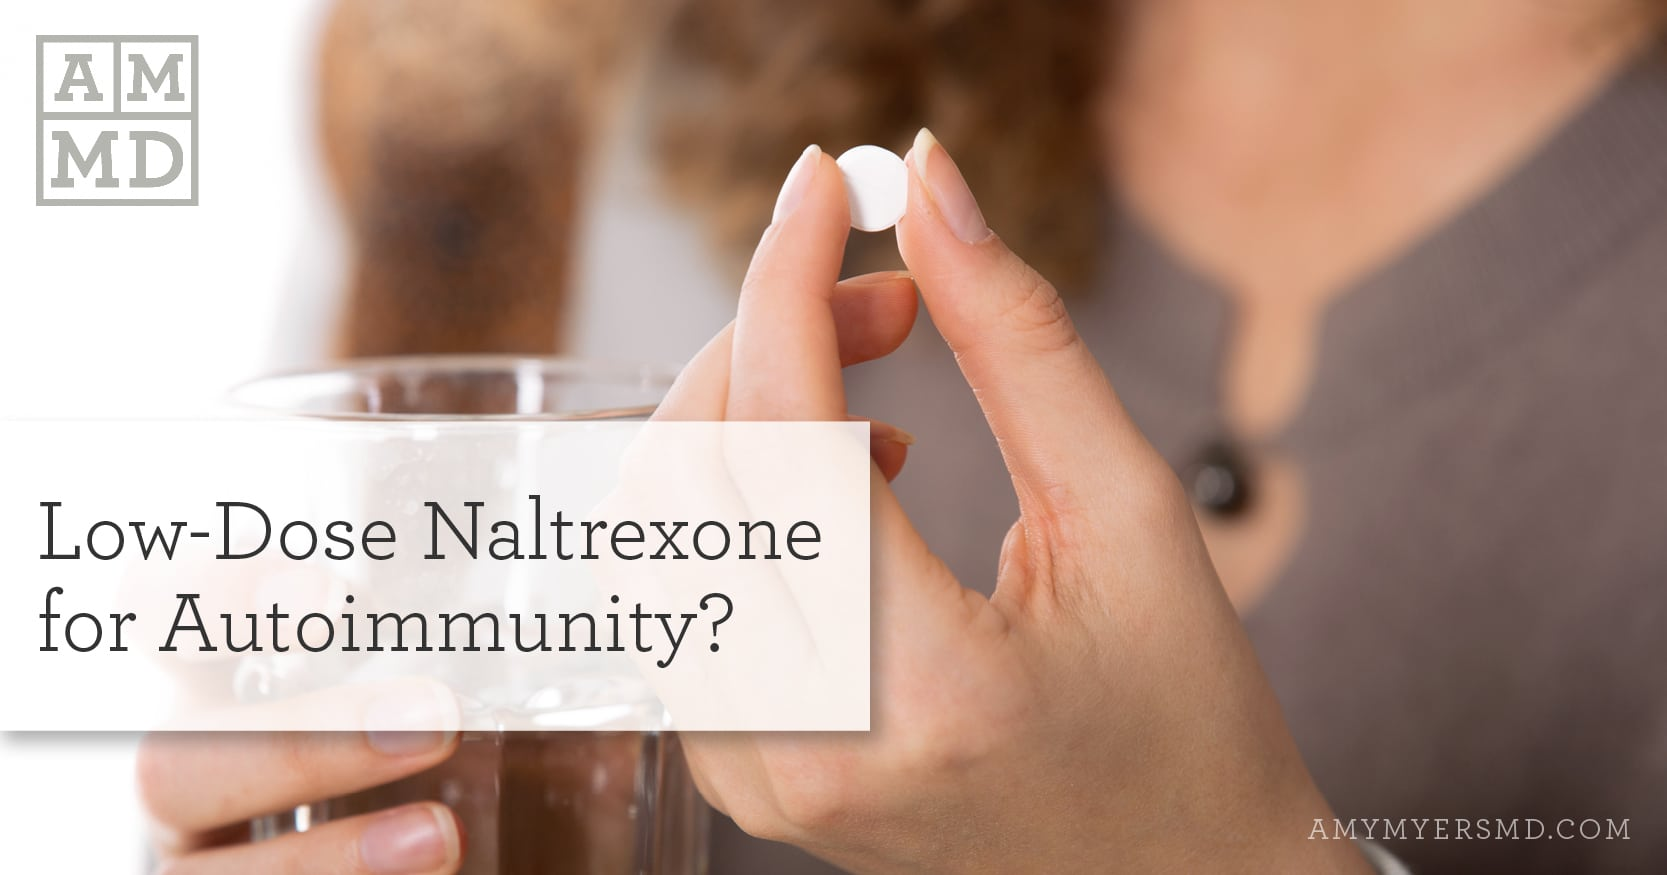 Low-Dose Naltrexone for Autoimmunity? - Amy Myers MD